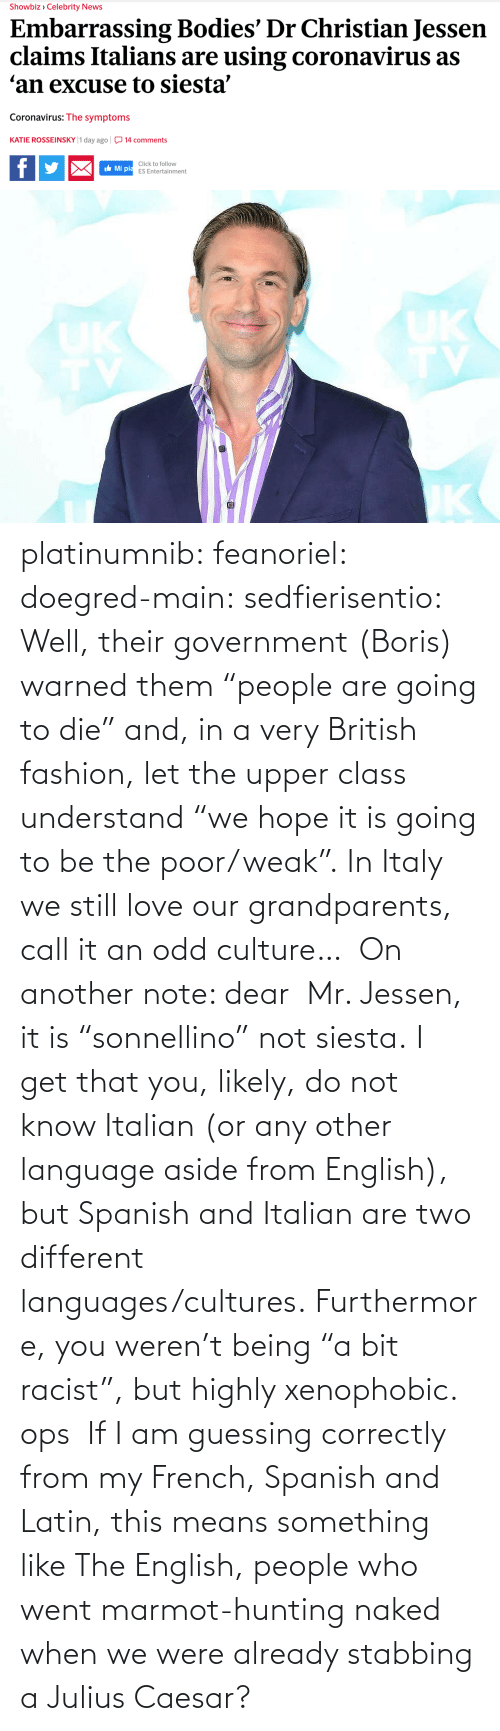 "British: platinumnib:  feanoriel: doegred-main:  sedfierisentio:  Well, their government (Boris) warned them ""people are going to die"" and, in a very British fashion, let the upper class understand ""we hope it is going to be the poor/weak"". In Italy we still love our grandparents, call it an odd culture…  On another note: dear  Mr. Jessen, it is ""sonnellino"" not siesta. I get that you, likely, do not know Italian (or any other language aside from English), but Spanish and Italian are two different languages/cultures. Furthermore, you weren't being ""a bit racist"", but highly xenophobic.   ops   If I am guessing correctly from my French, Spanish and Latin, this means something like The English, people who went marmot-hunting naked when we were already stabbing a Julius Caesar?"